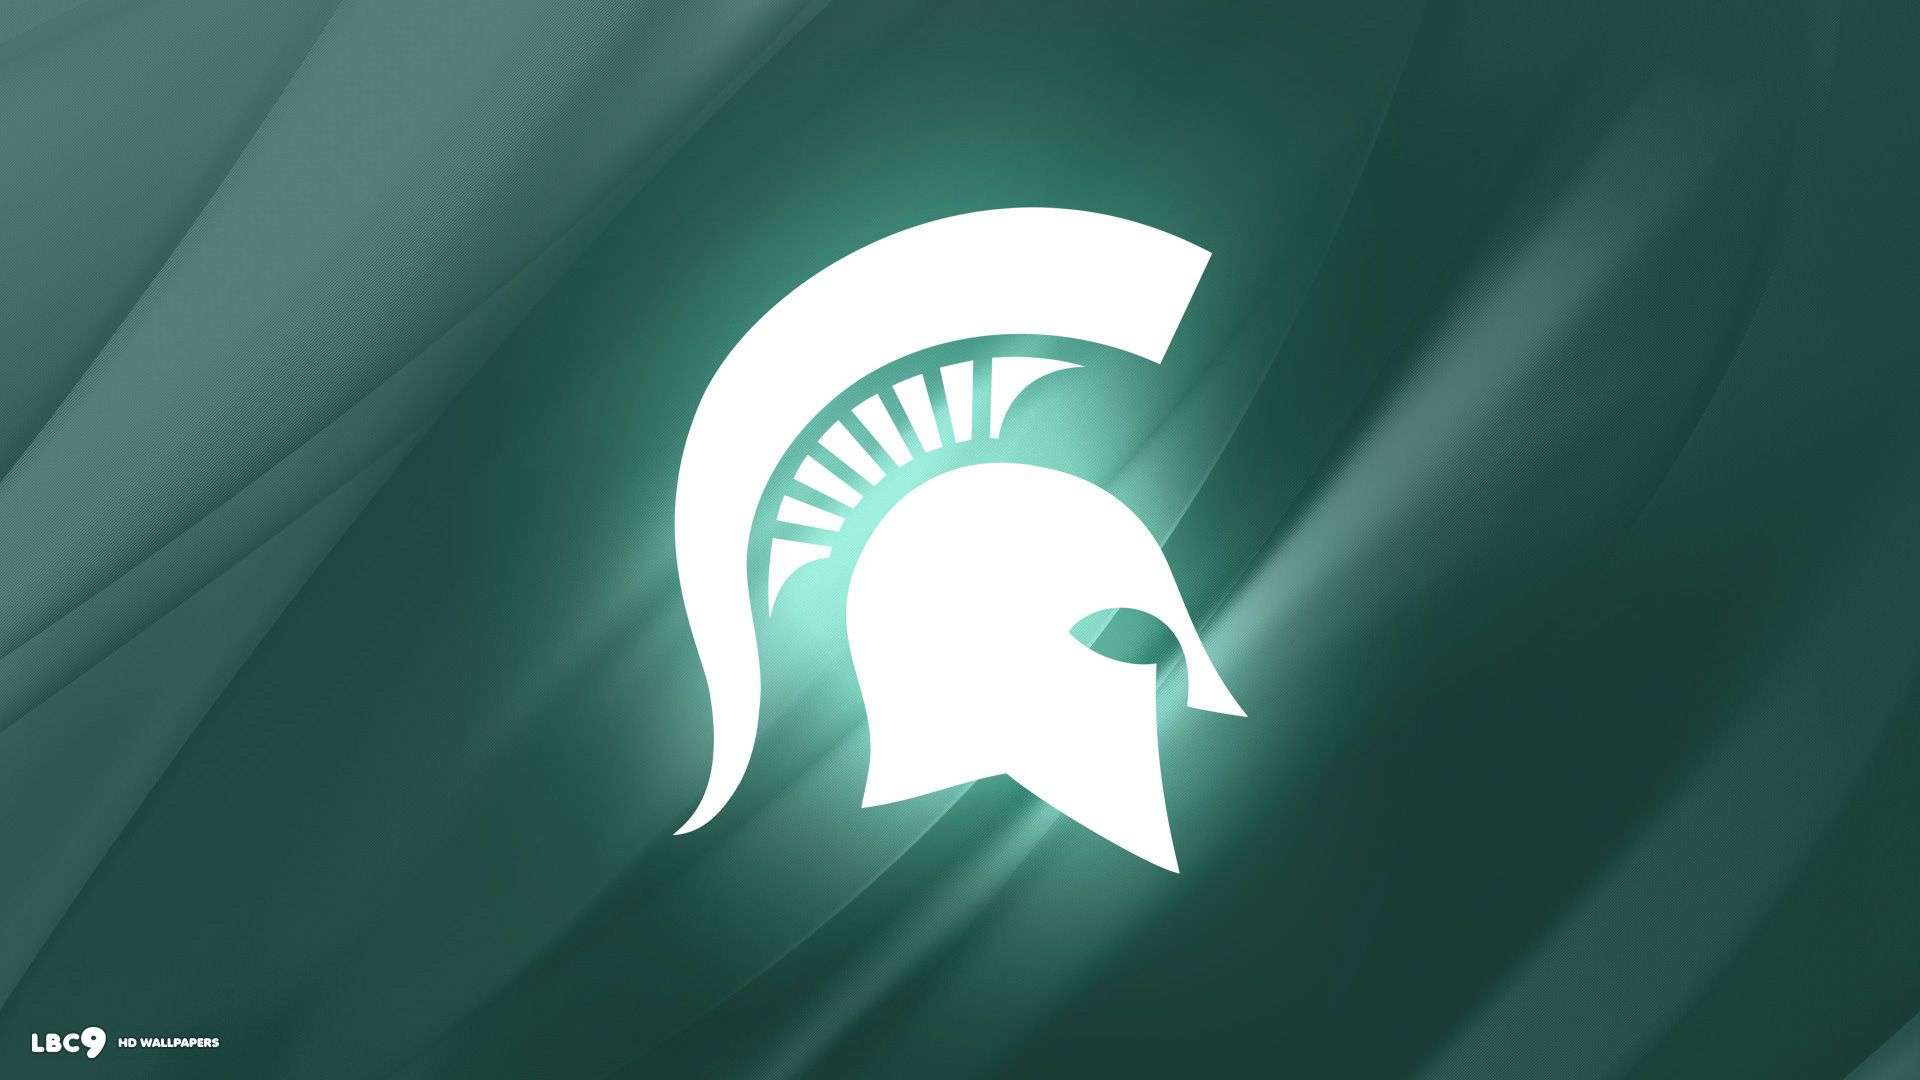 Msu Spartan Wallpaper